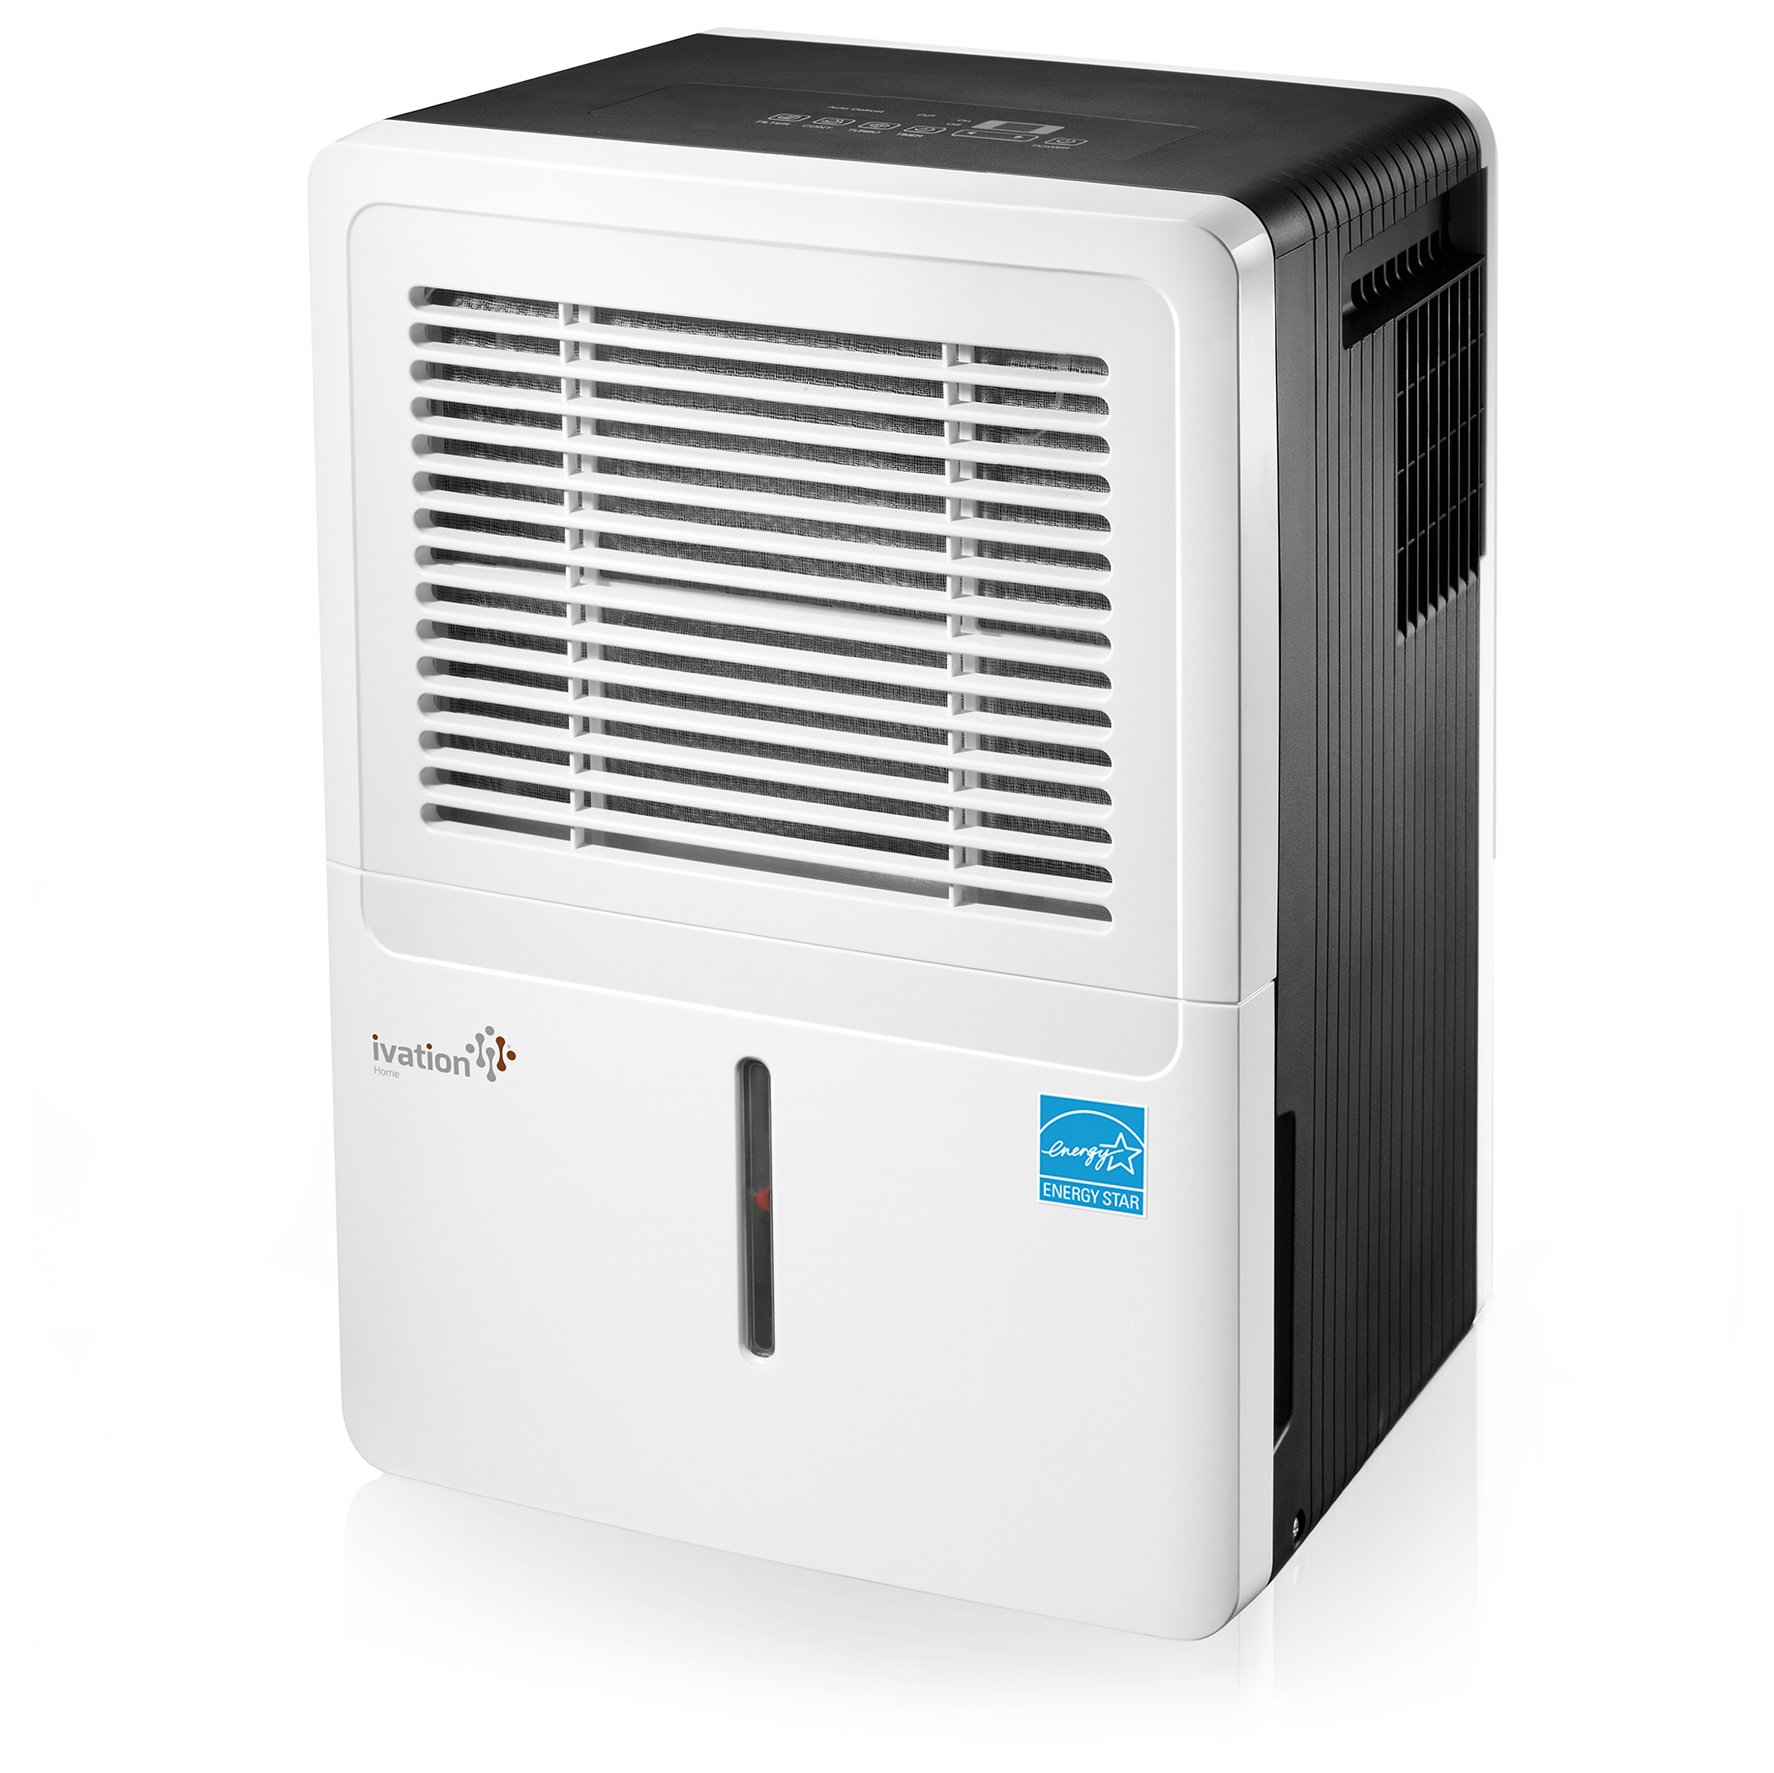 Ivation 30 Pint Energy Star Dehumidifier - For Spaces Up To 2,000 Sq Ft - Includes Programmable Humidistat, Hose Connector, Auto Shutoff / Restart, Casters & Washable Air Filter (30 Pint)